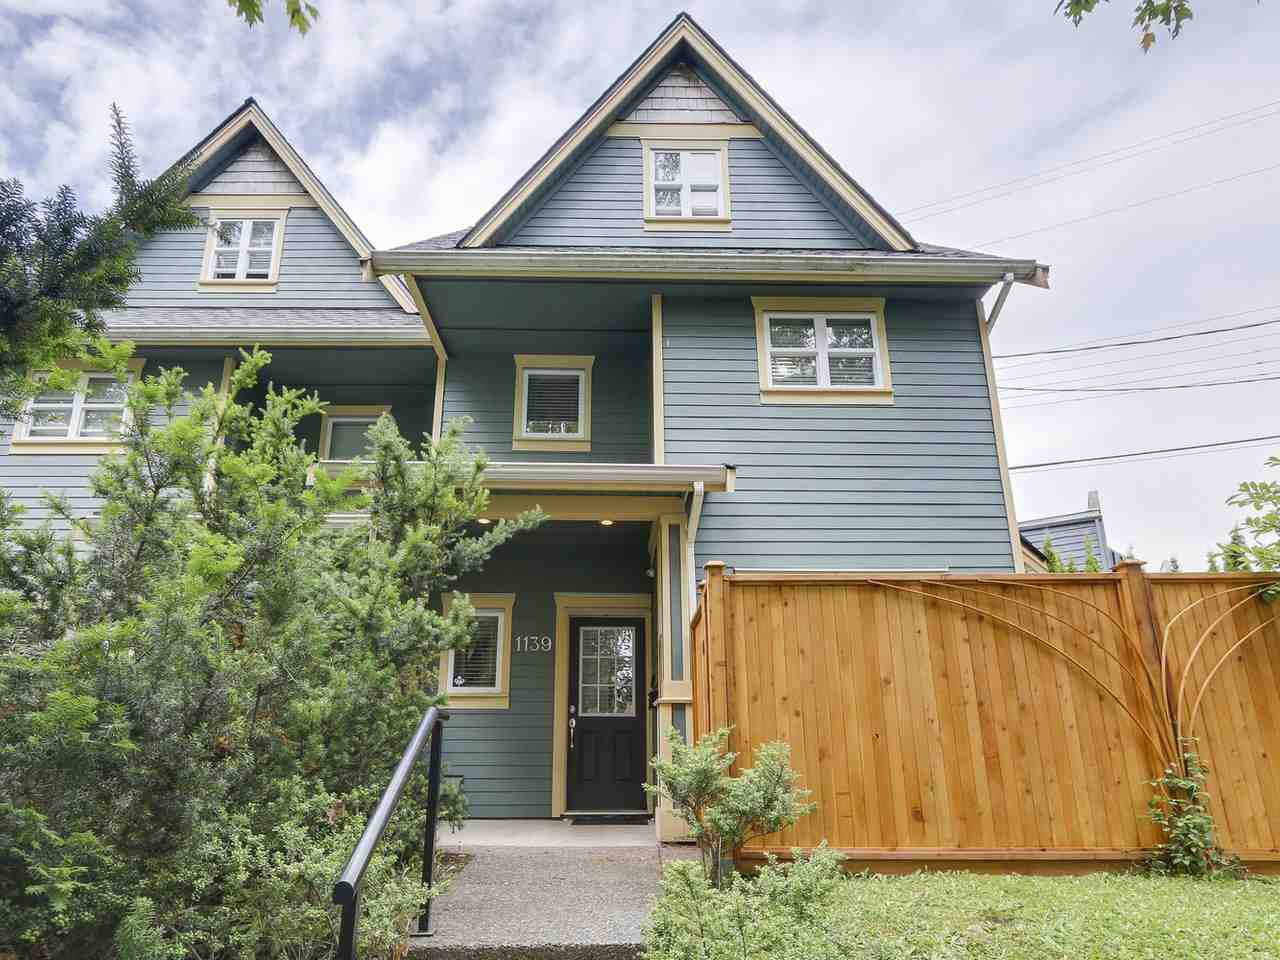 Main Photo: 1139 E 21ST Avenue in Vancouver: Knight House 1/2 Duplex for sale (Vancouver East)  : MLS®# R2180419